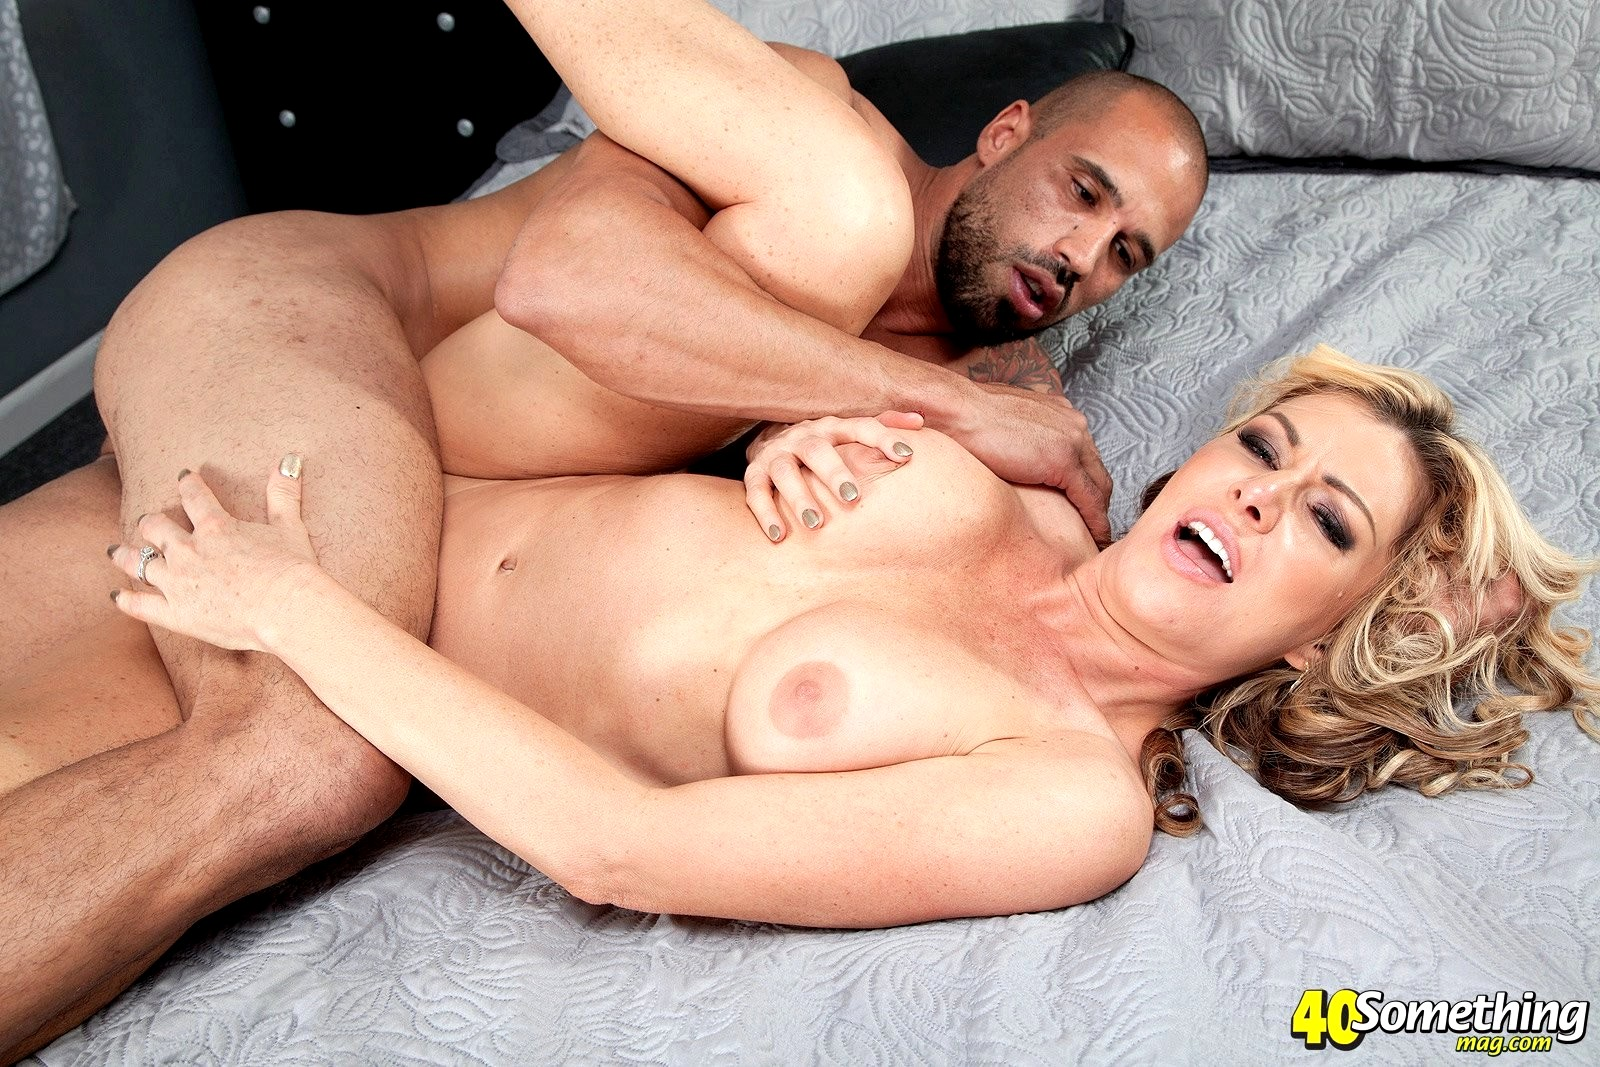 alexis texas footjob sex